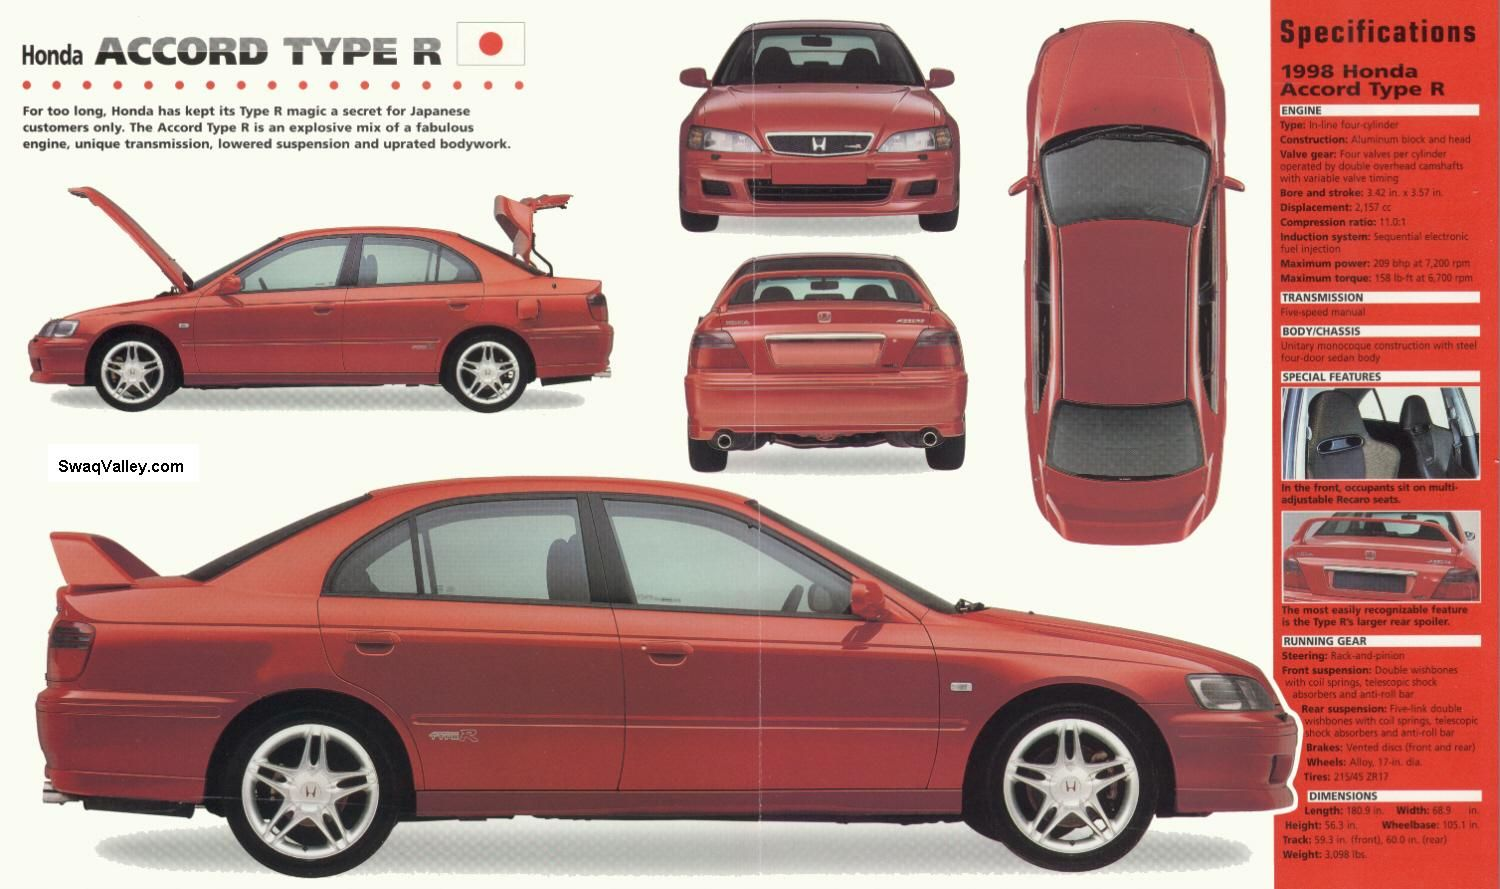 Honda accord type r 1998 spec sheet